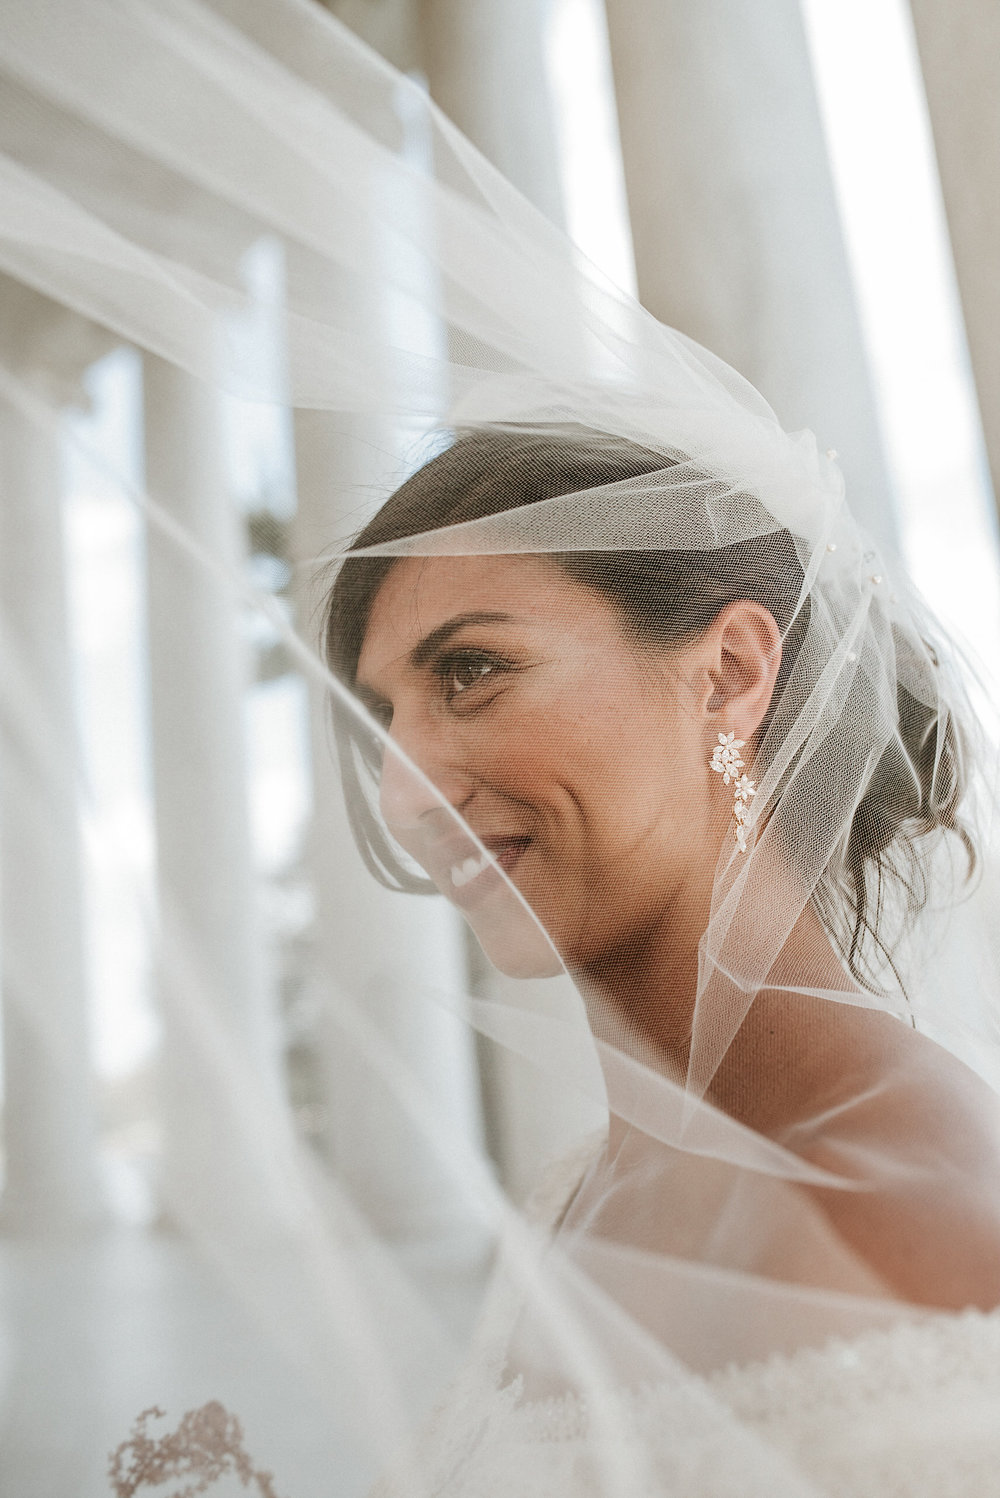 Bride under blowing veil